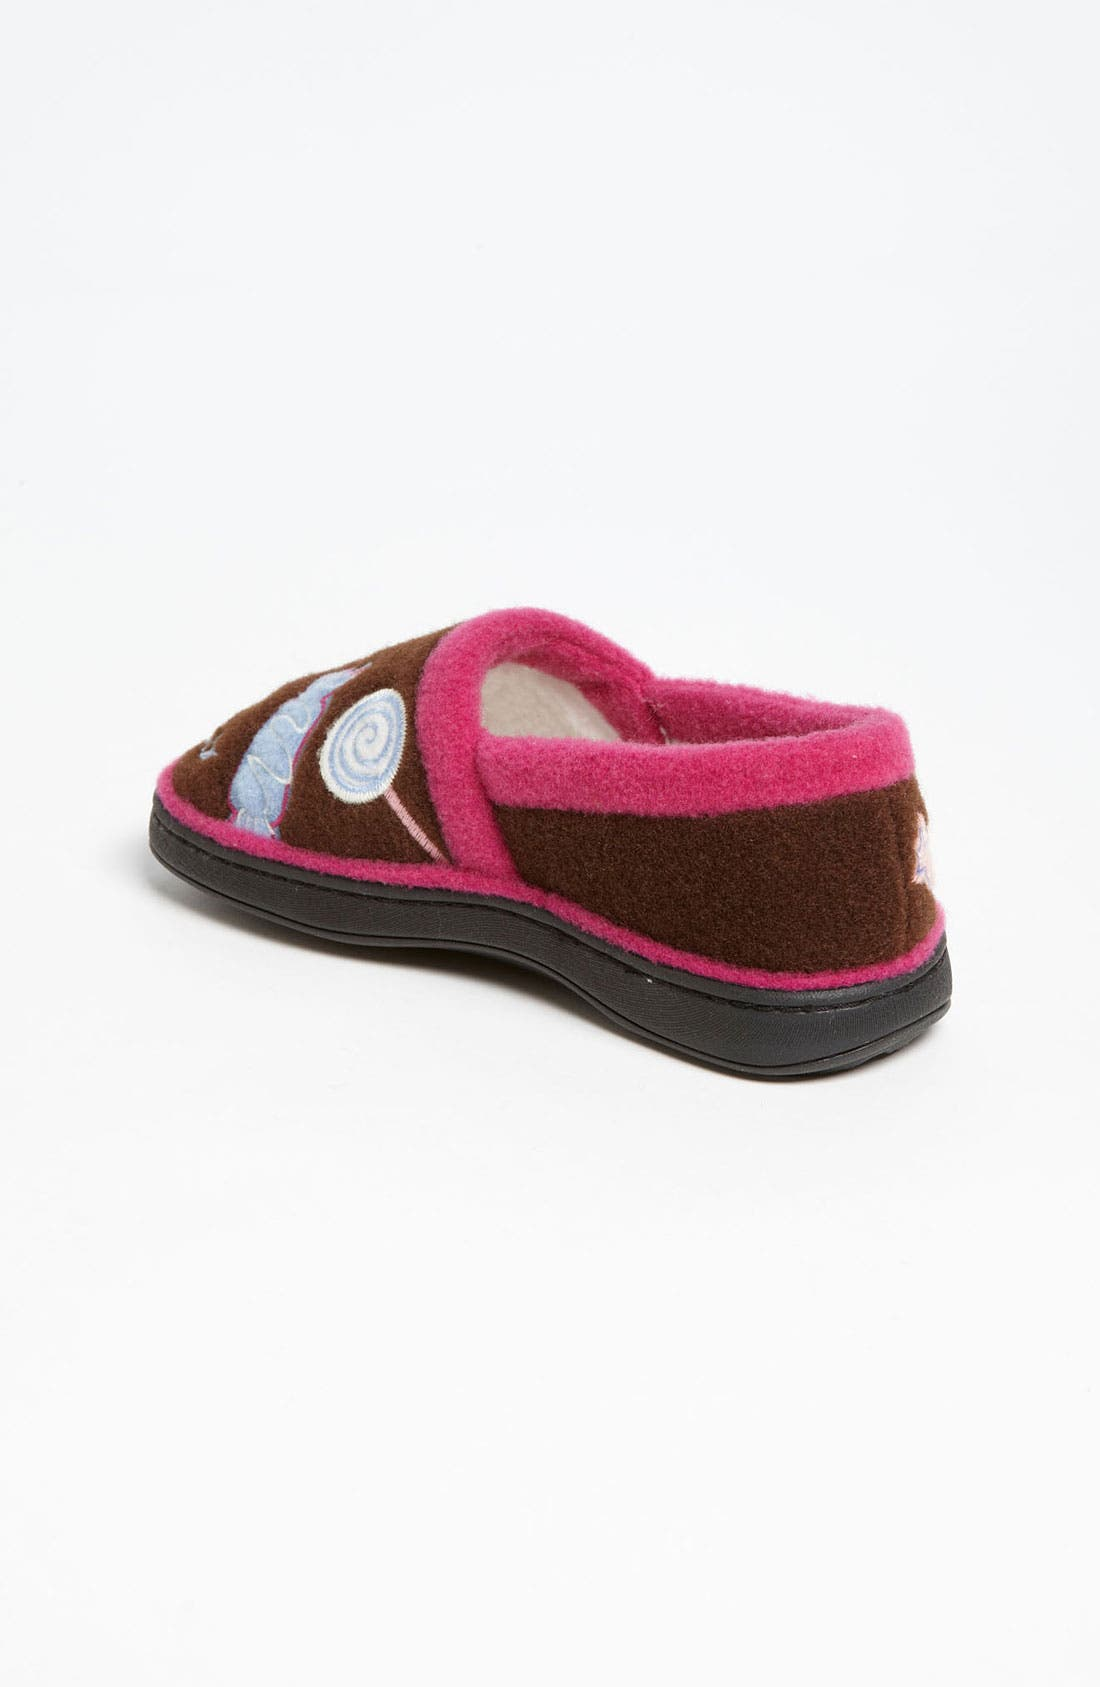 Alternate Image 2  - Acorn 'Sweet Dreams' Slipper (Toddler, Little Kid & Big Kid)